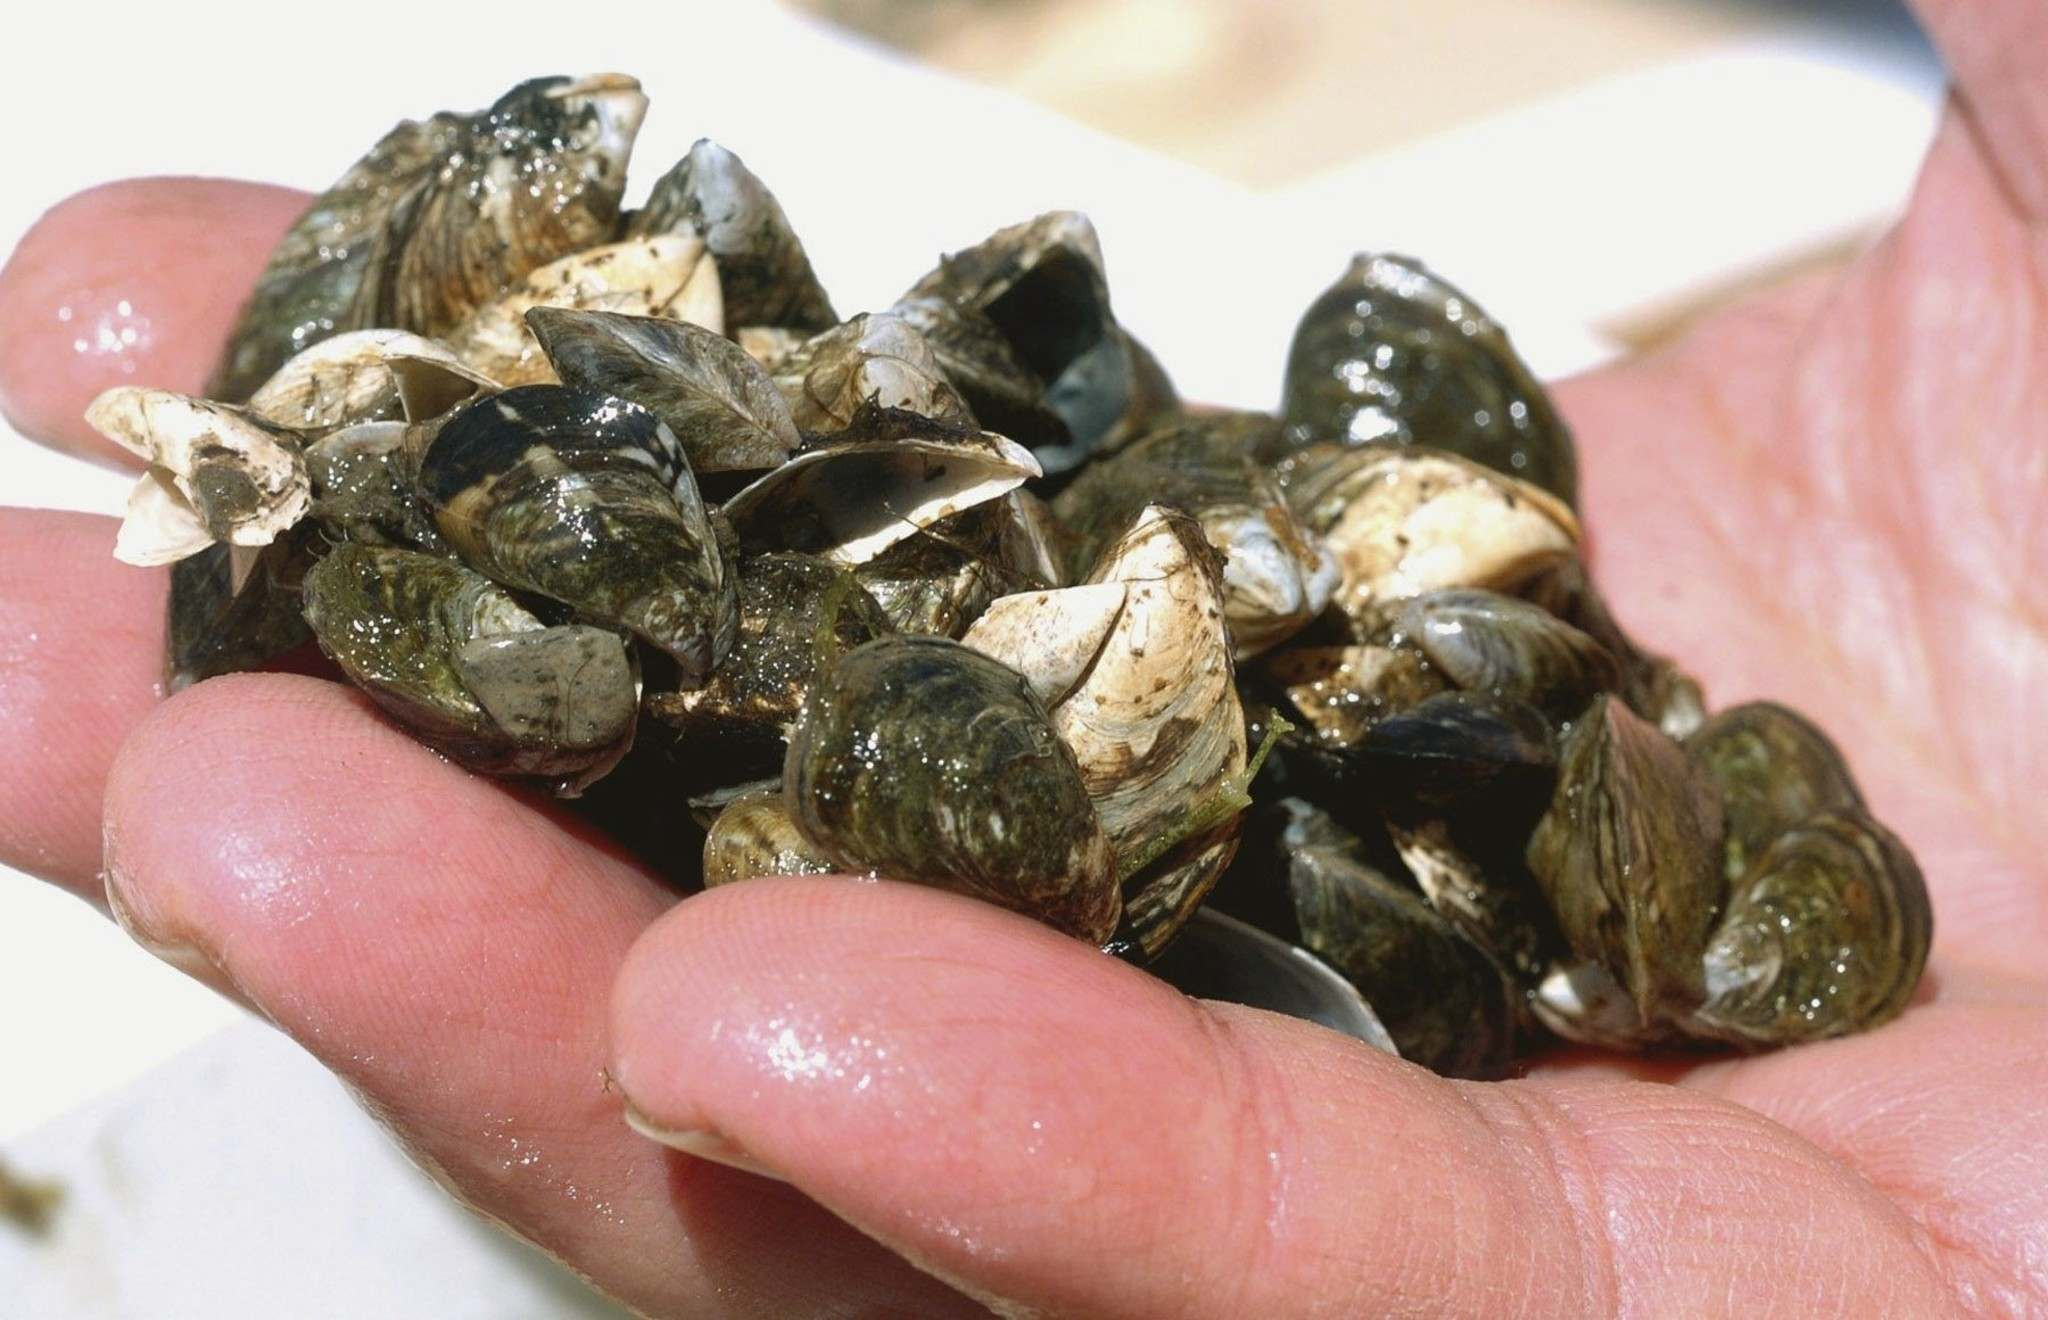 THE CANADIAN PRESS/AP - John L. Russell</p><p>A cluster of zebra mussels. Manitoba's provincial government has asked for increased federal assistance to control the invasive species of mollusk at the Manitoba-U.S. border.</p>